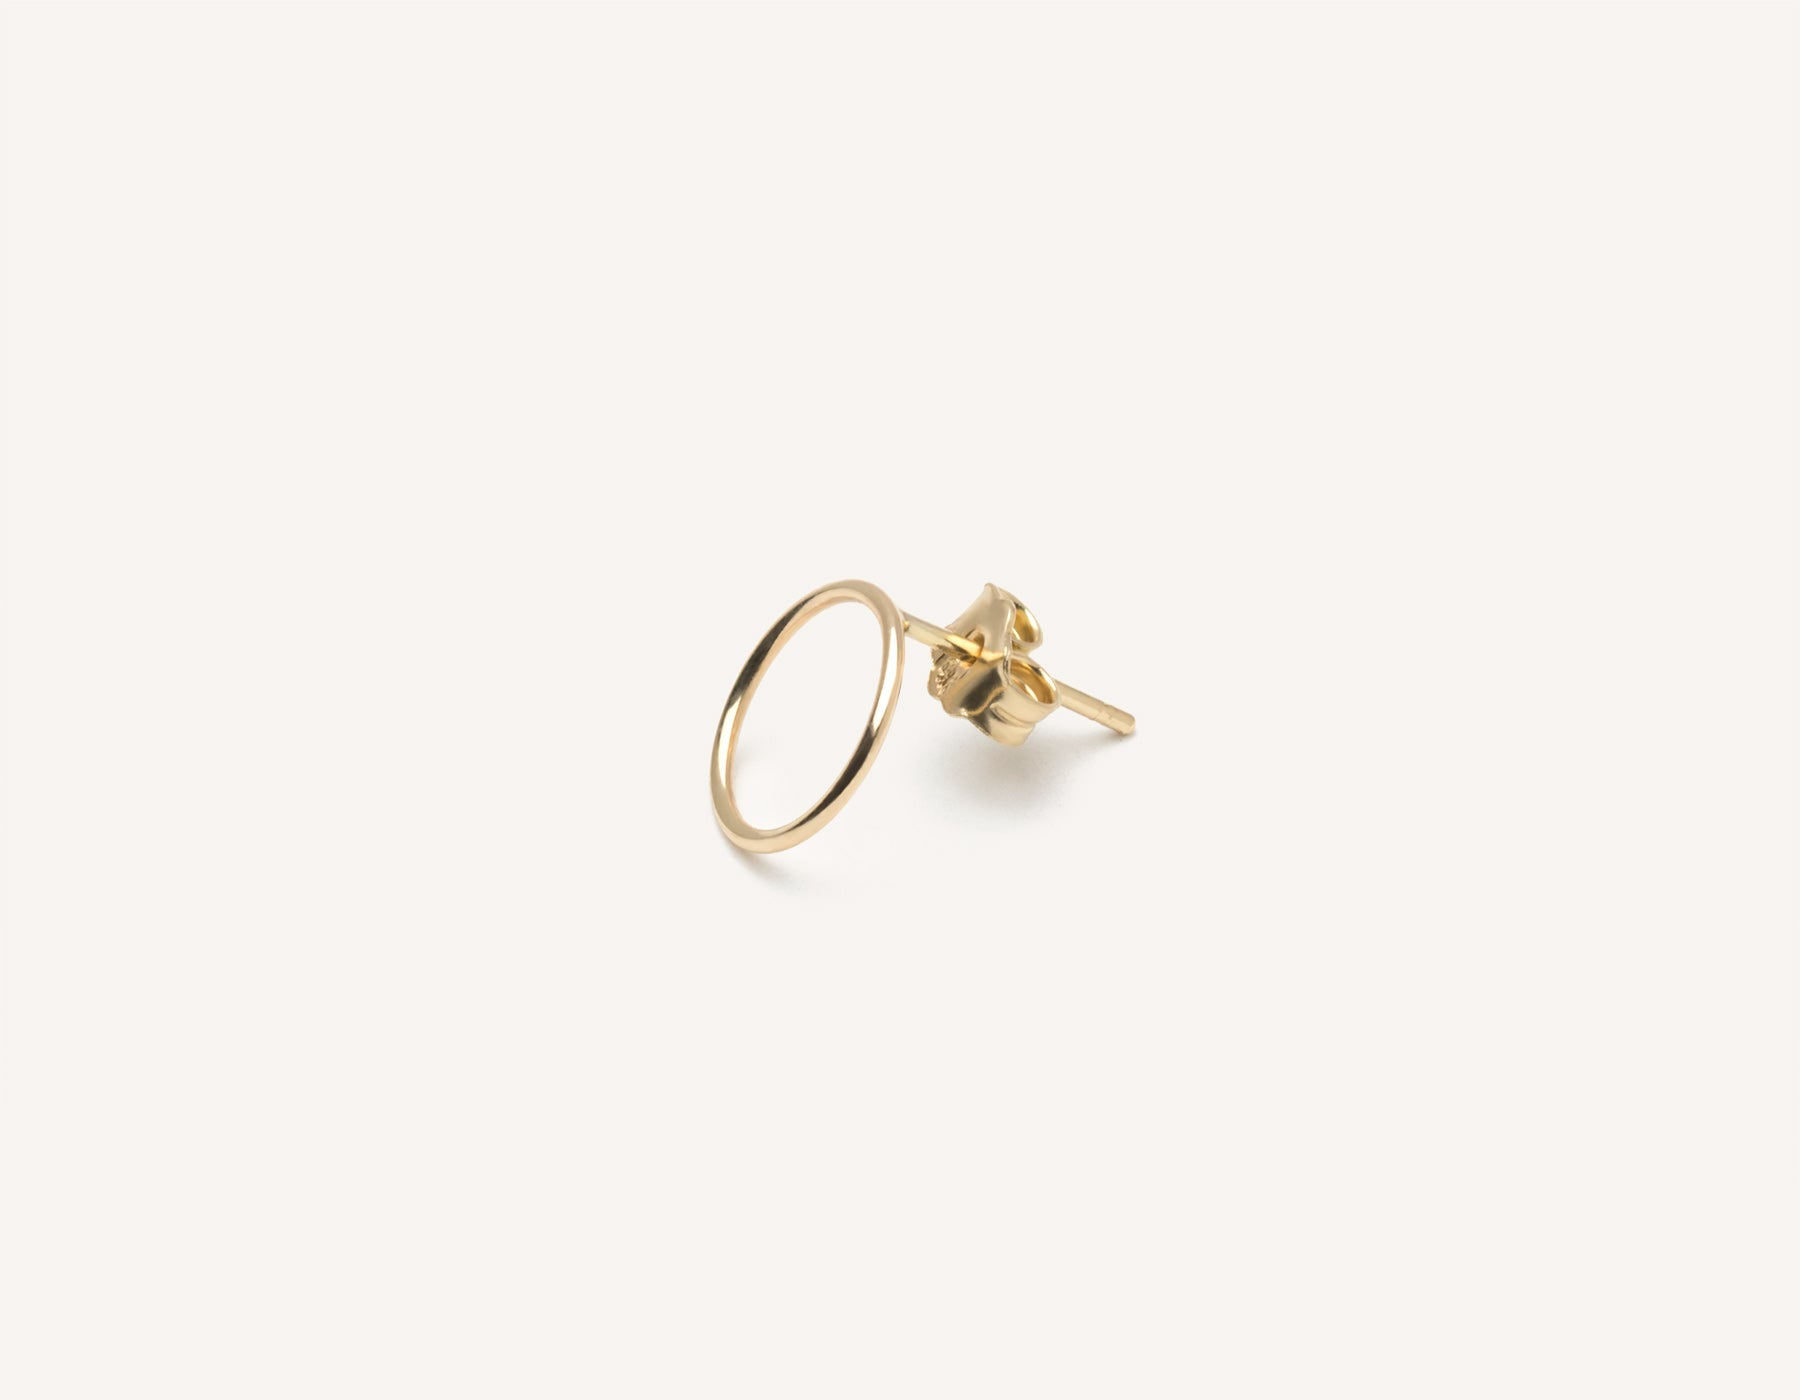 Basic subtle Circle Stud Earring 14k solid gold Vrai & Oro versatile jewelry, 14K Yellow Gold